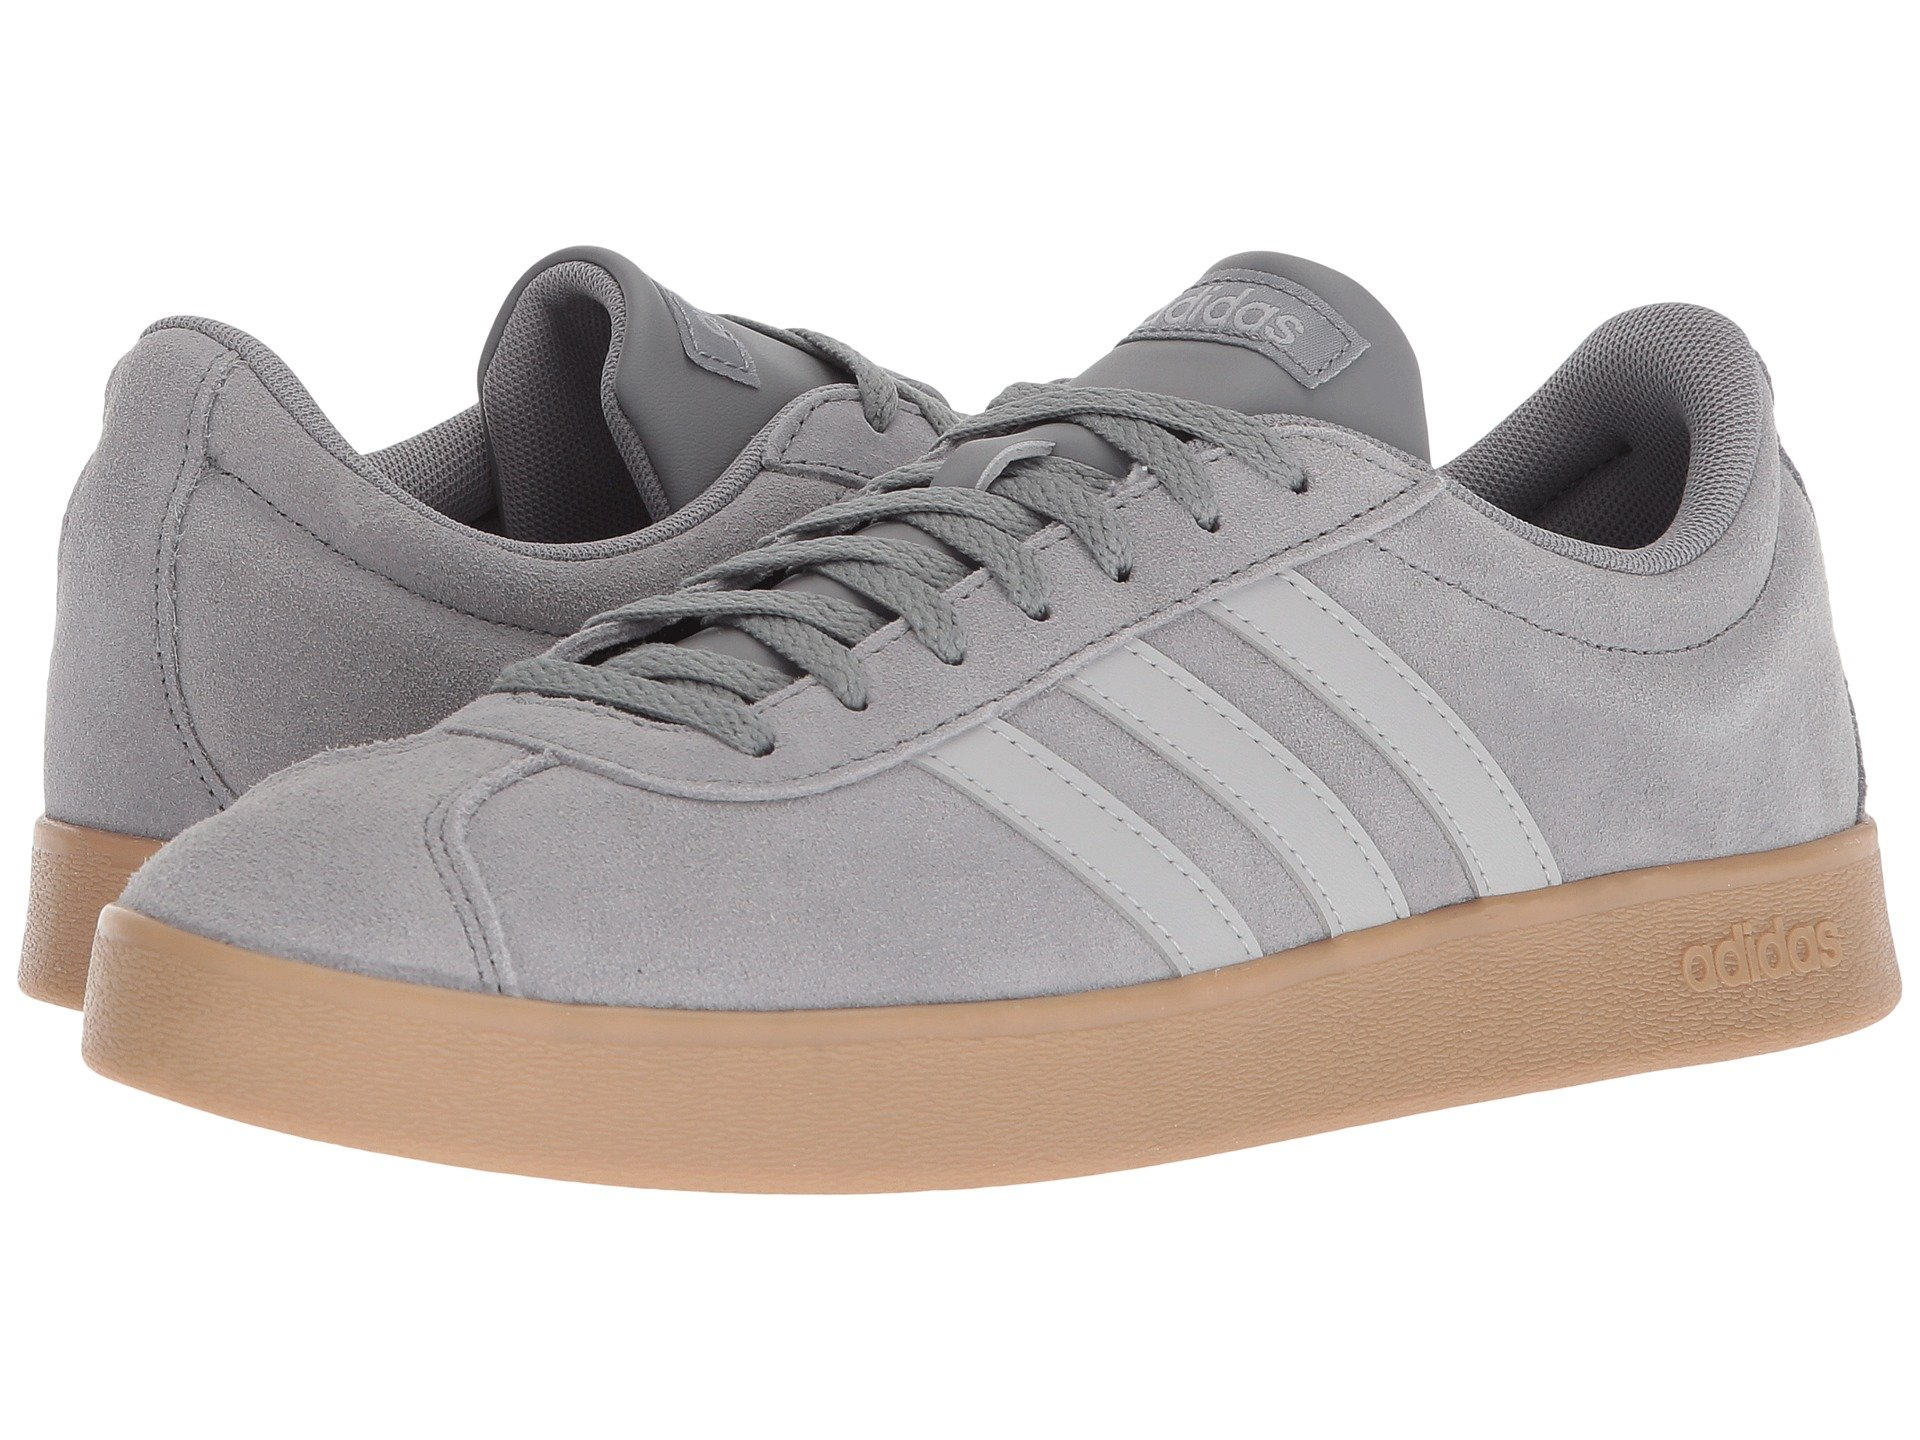 71146a3e2cd4 Adidas Originals Vl Court 2.0